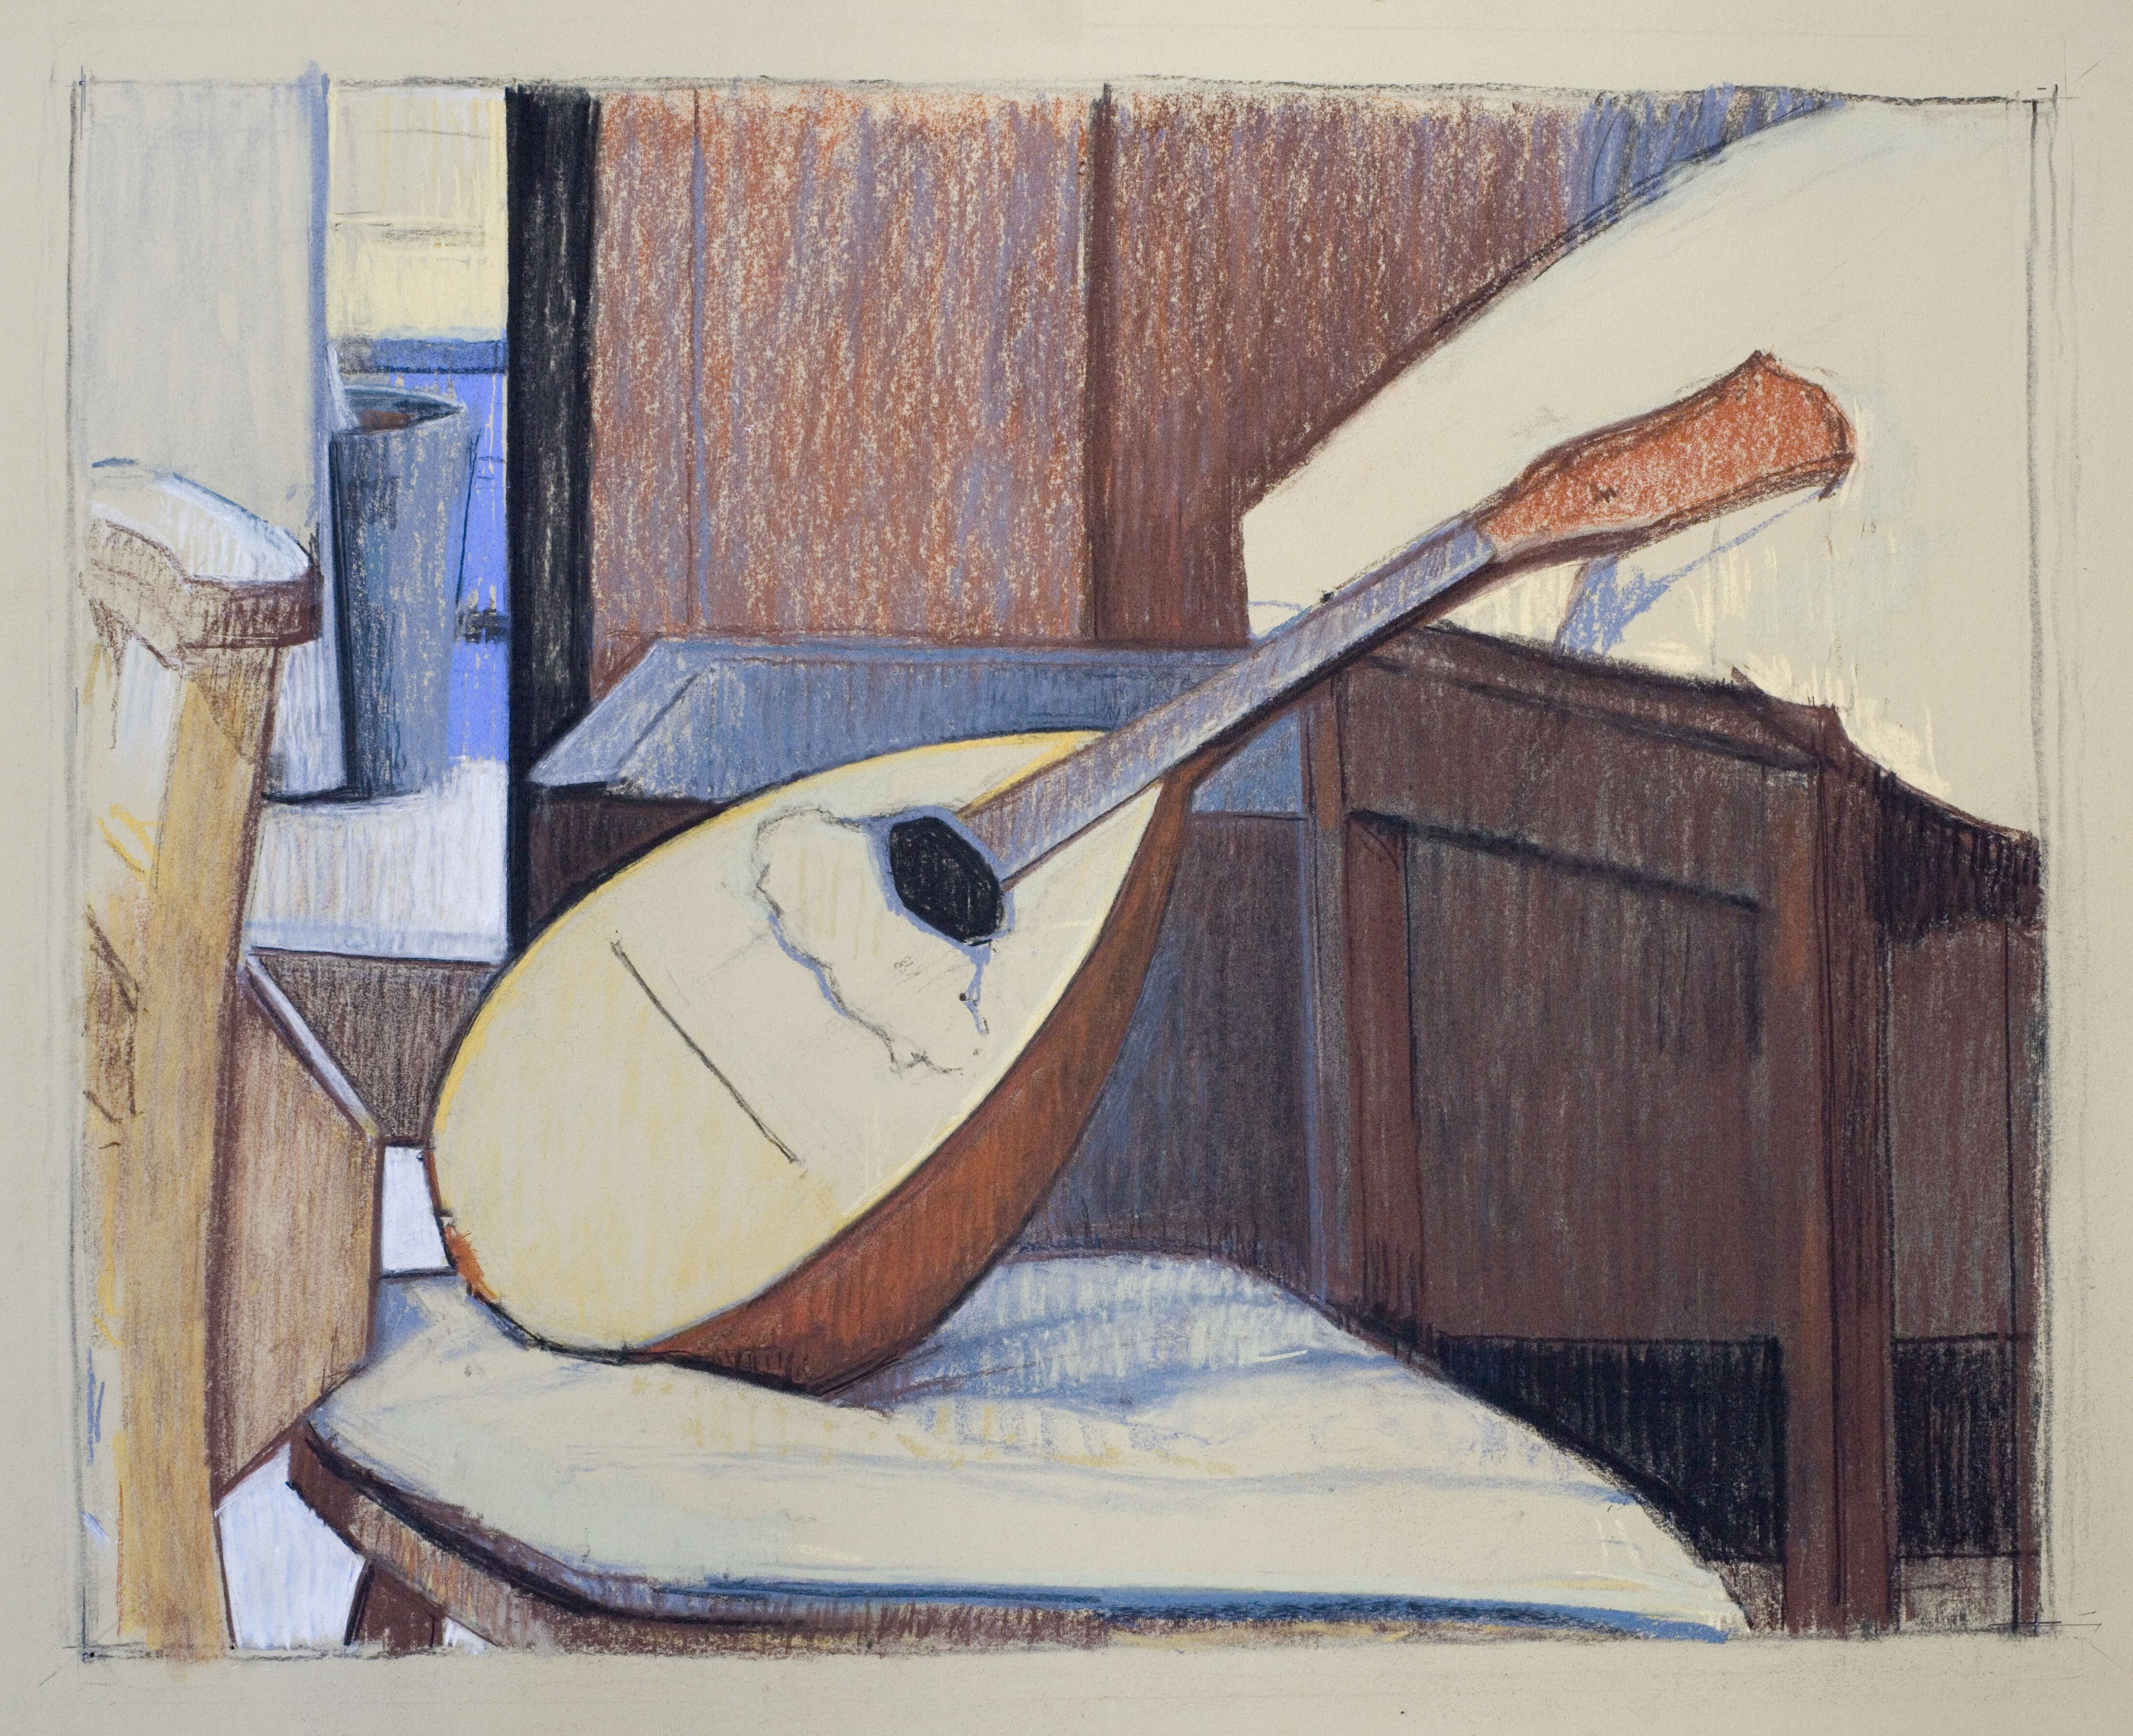 Seated Mandolin, 2014